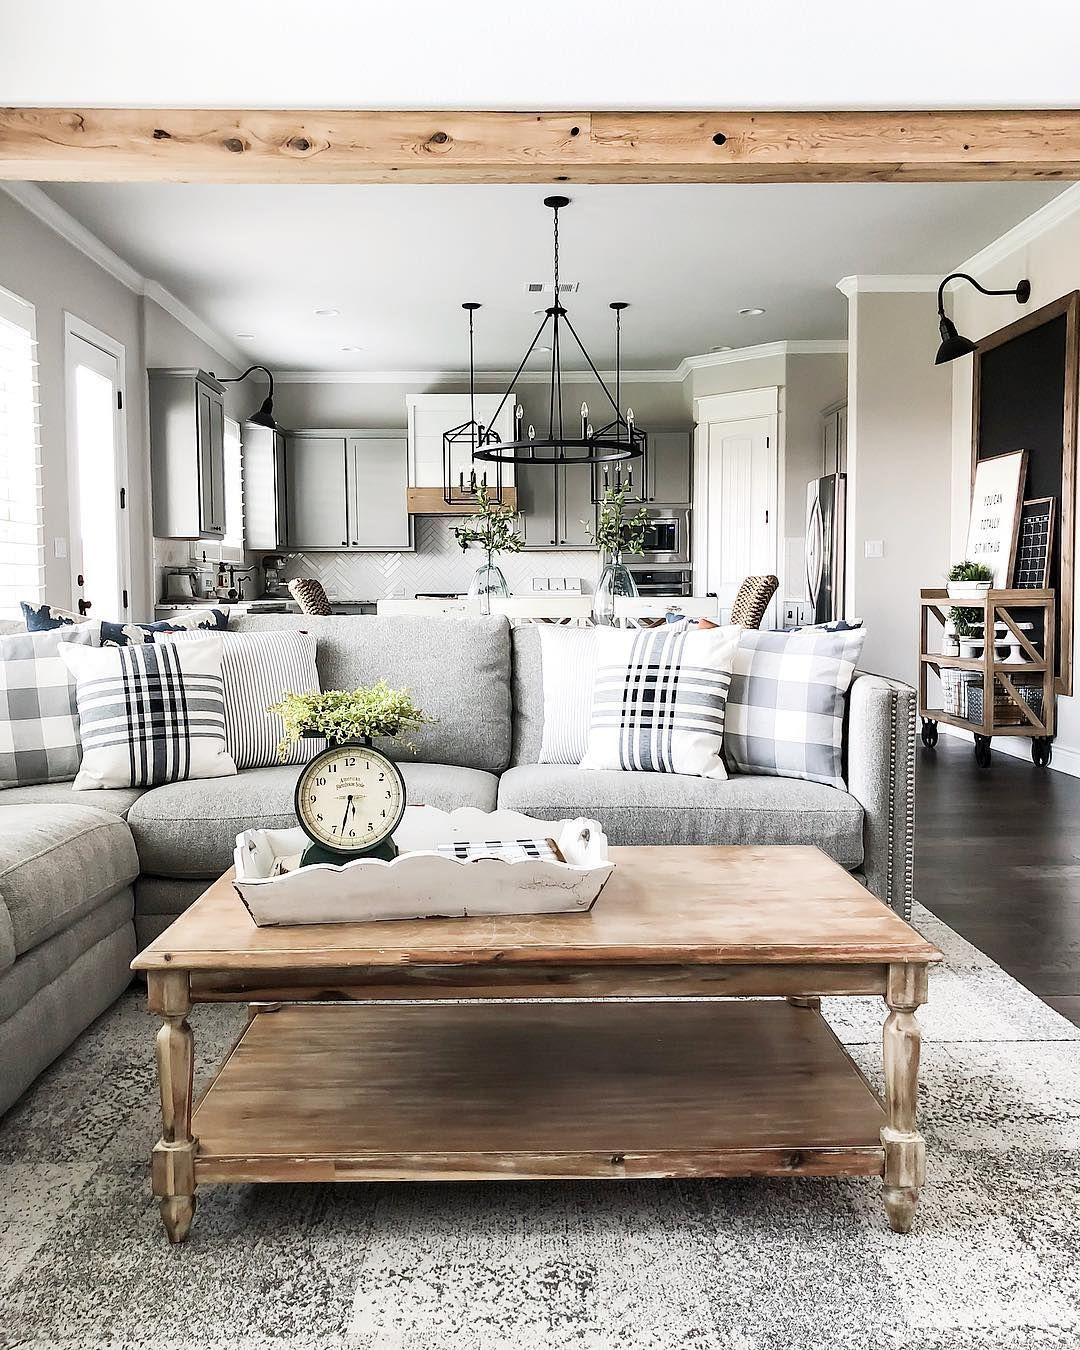 Diy Rustic Living Room Decor Rustic Colors For Living Room Rustic Country Liv Farmhouse Style Living Room Farm House Living Room Modern Farmhouse Living Room